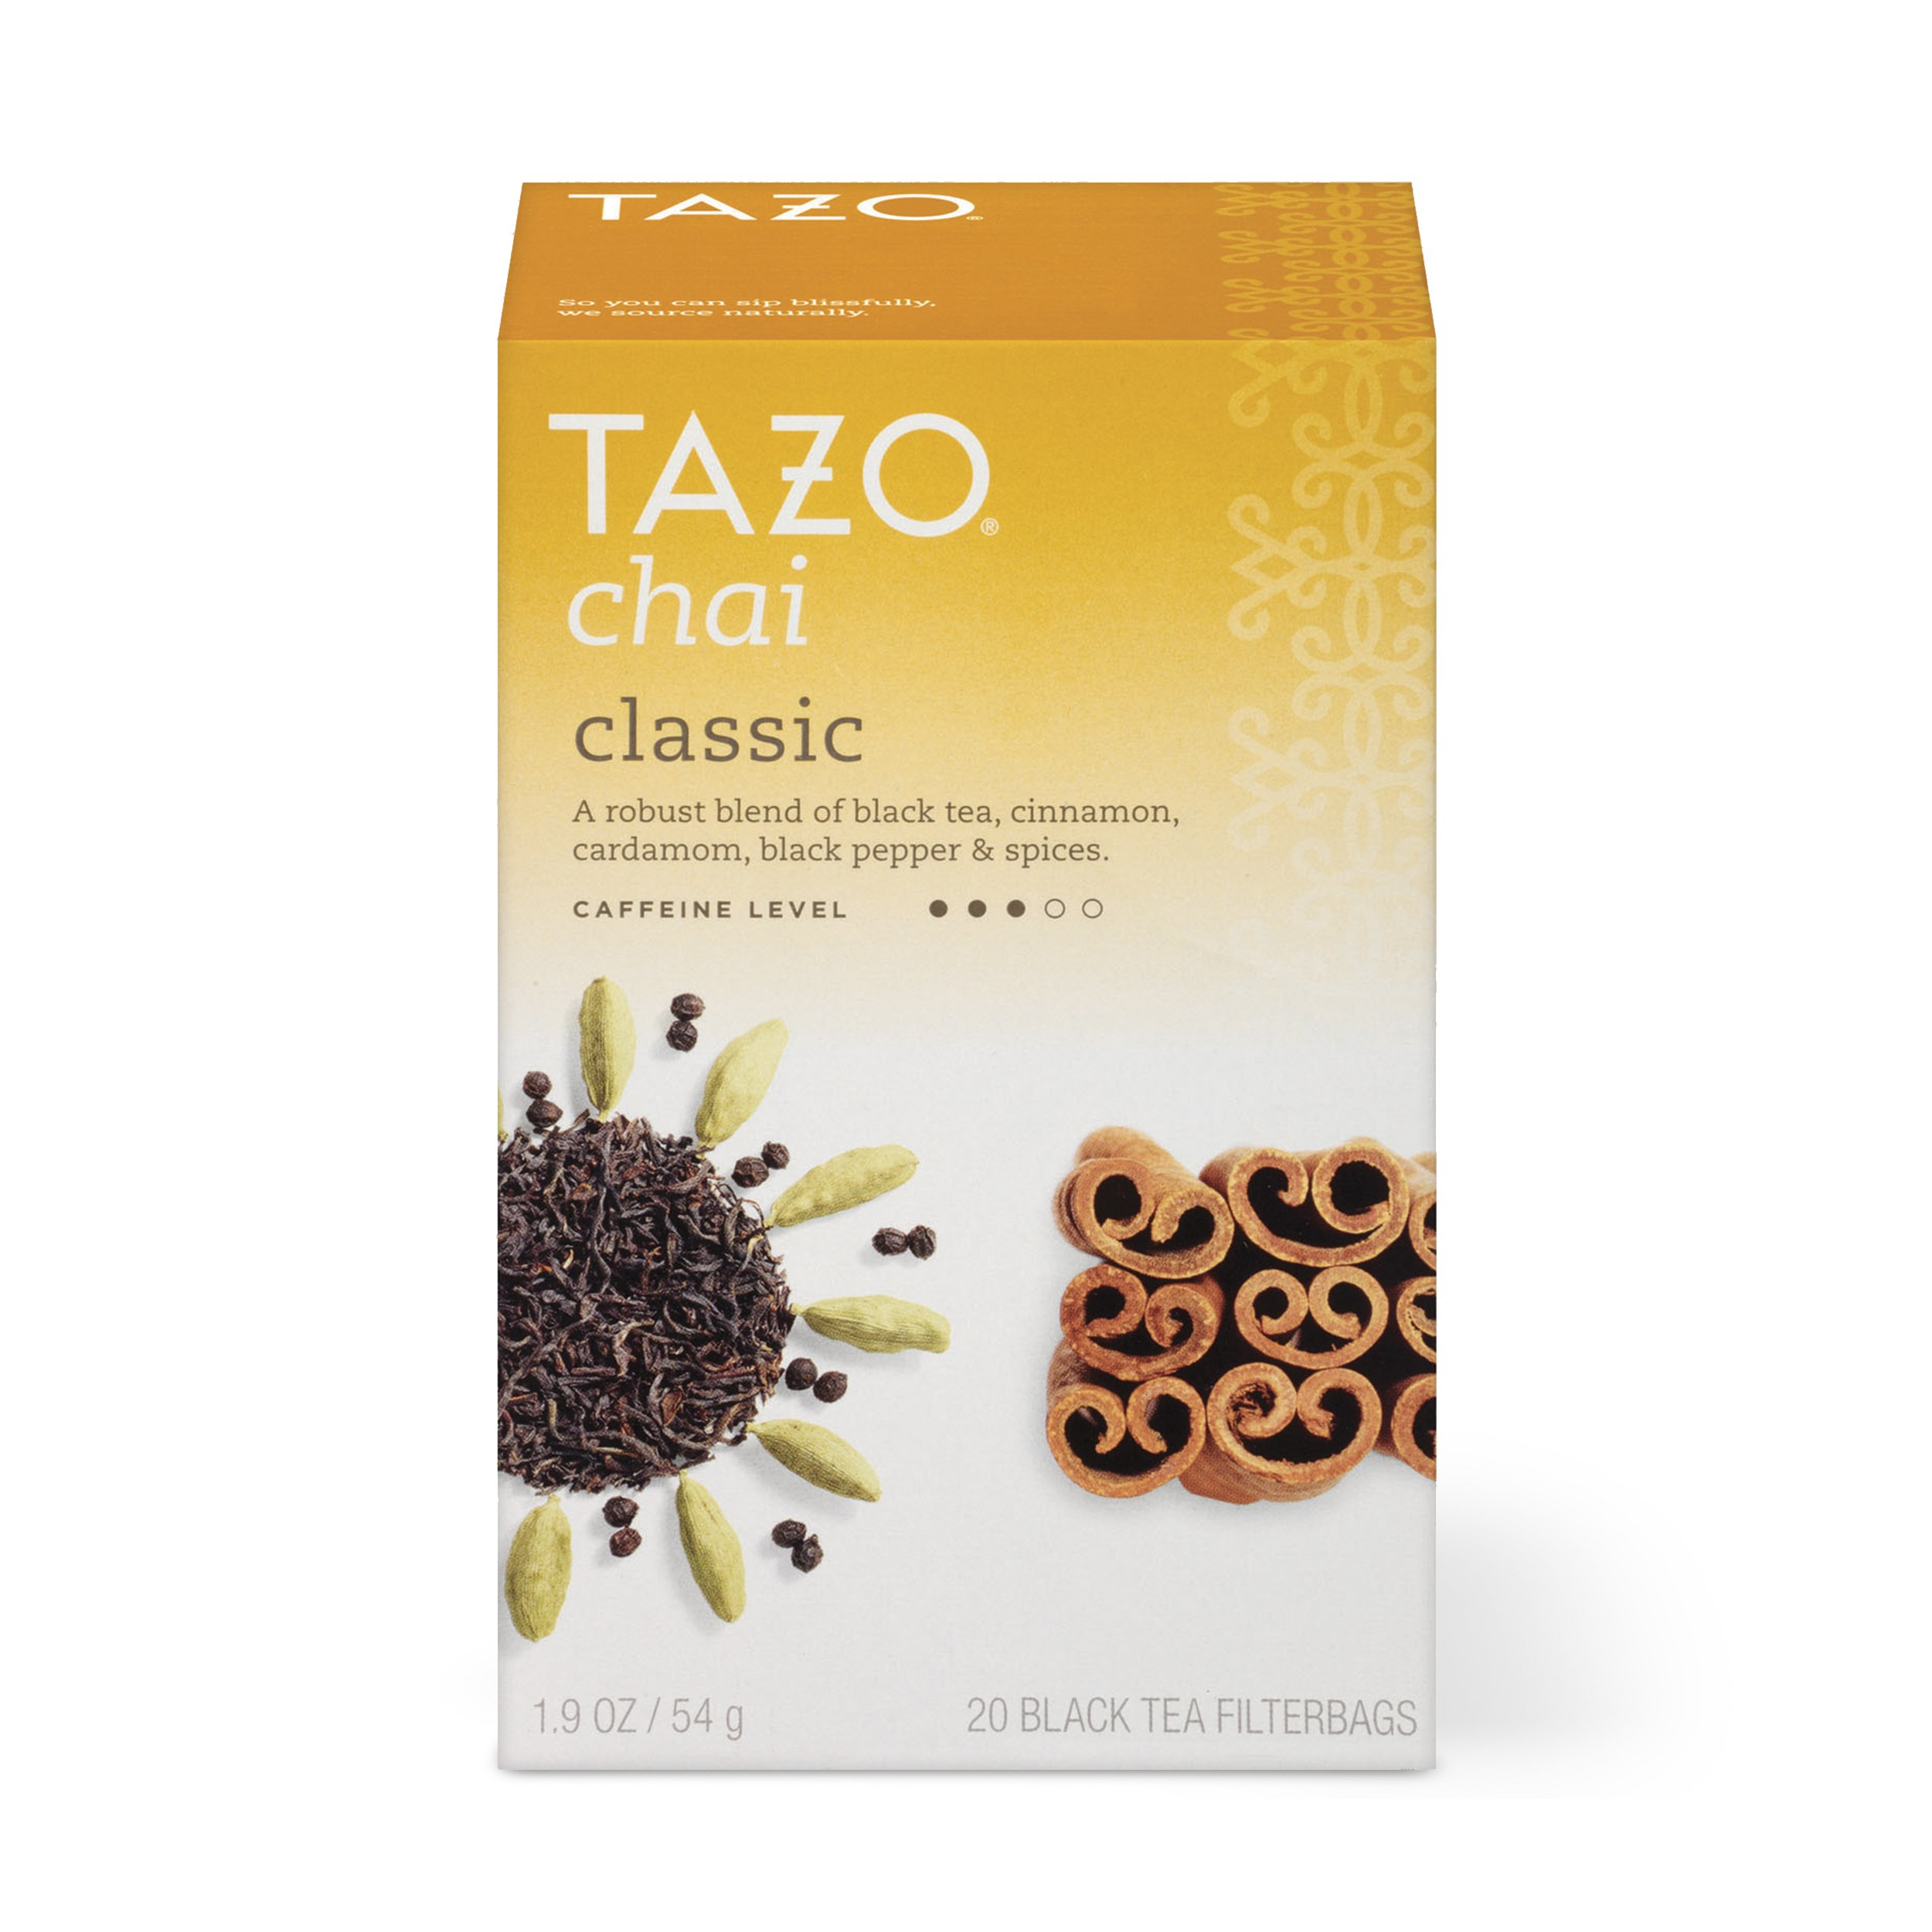 Tazo Classic Chai Black Tea Filterbags, 20 Count (Pack of 6)